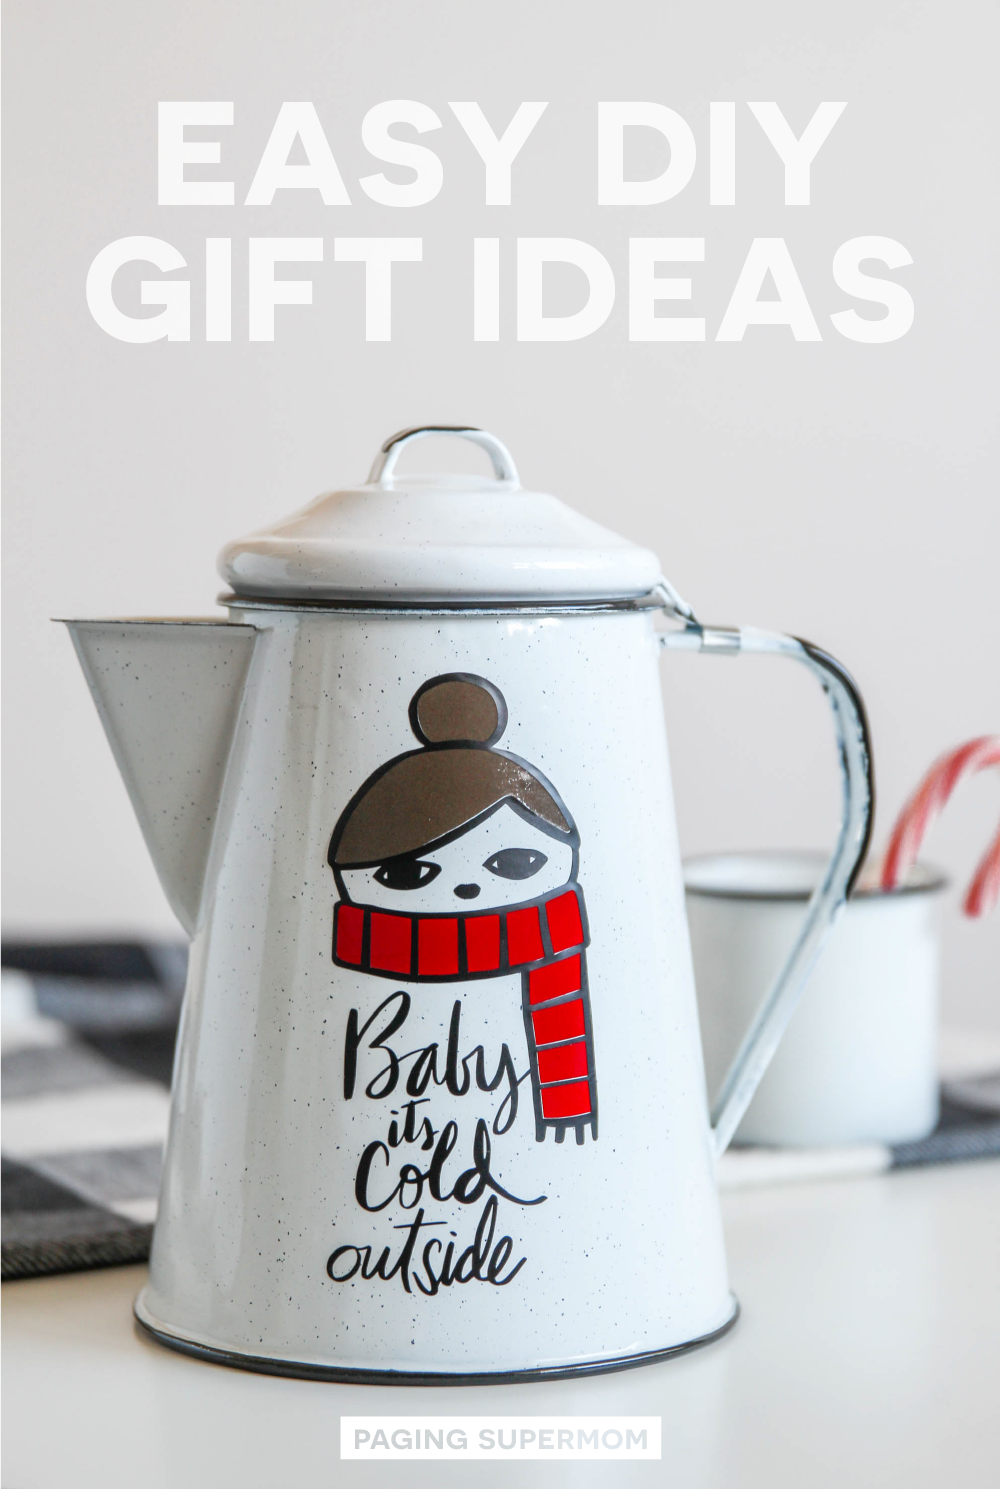 Easy DIY Christmas Gift Ideas using Vinyl Layering via @PagingSupermom